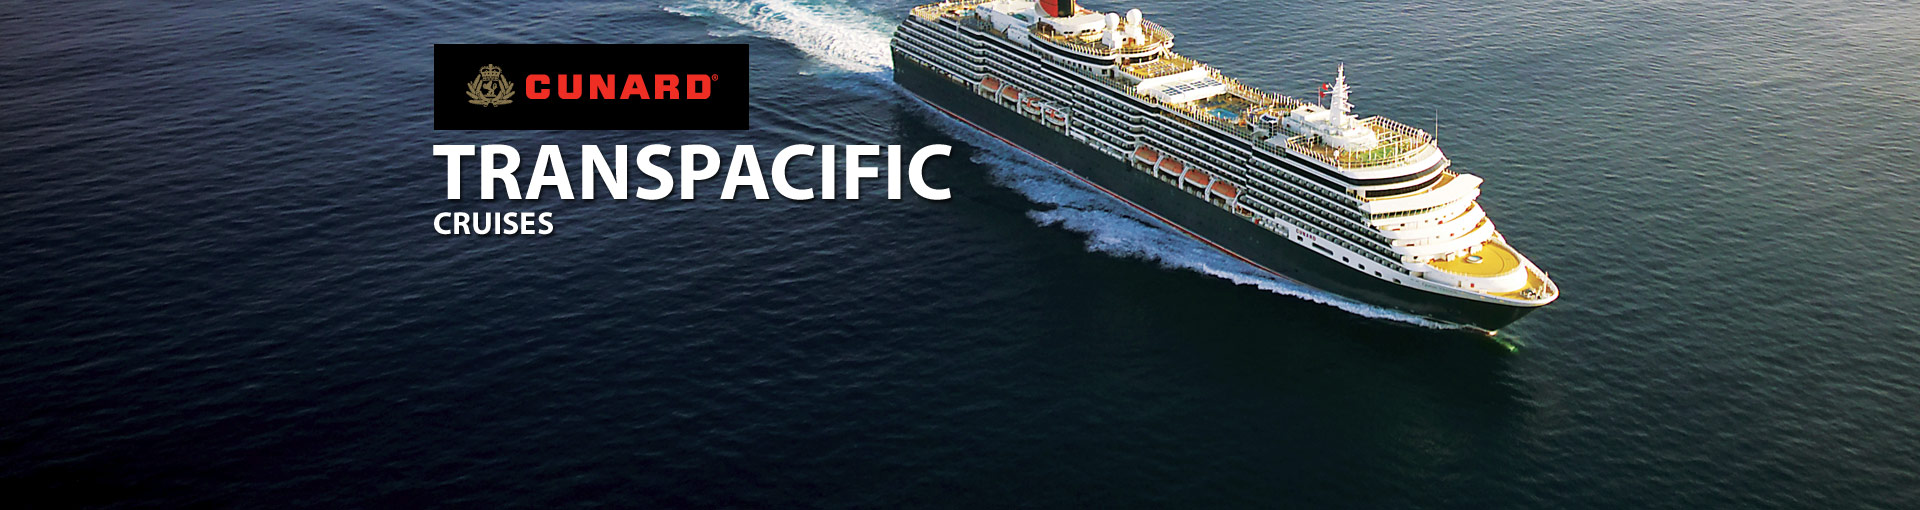 Cunard Line Transpacific Cruises